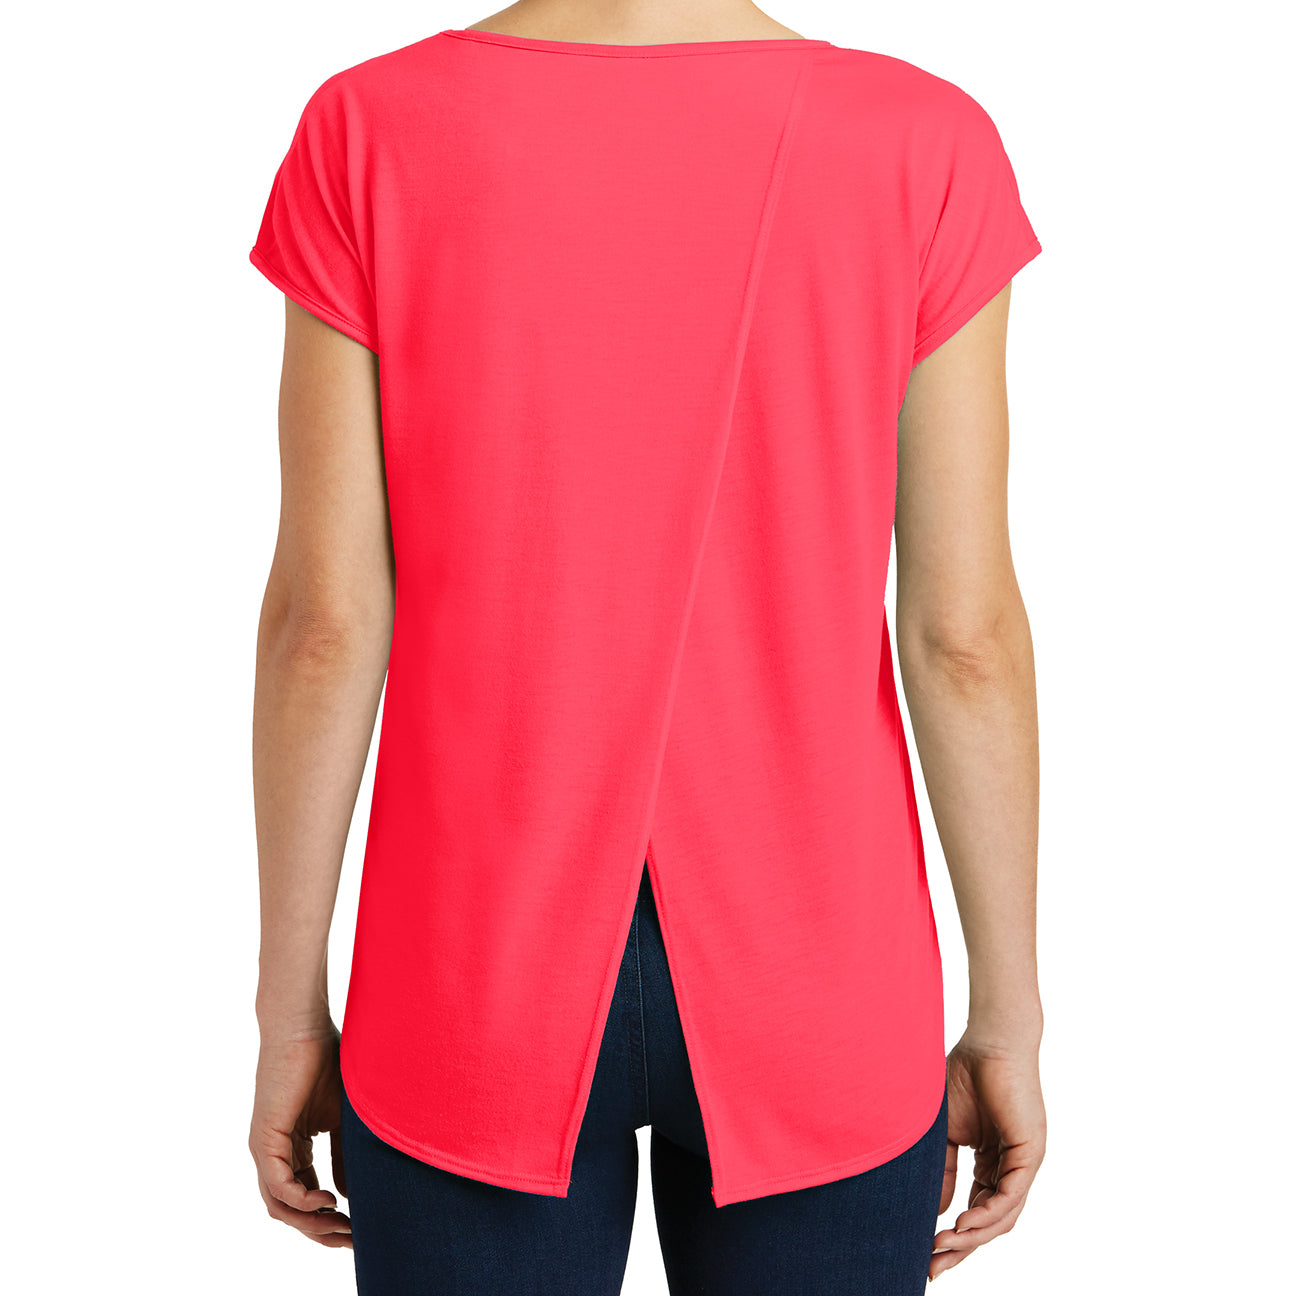 Womens Drapey Cross-Back Tee - Hot Coral - Back